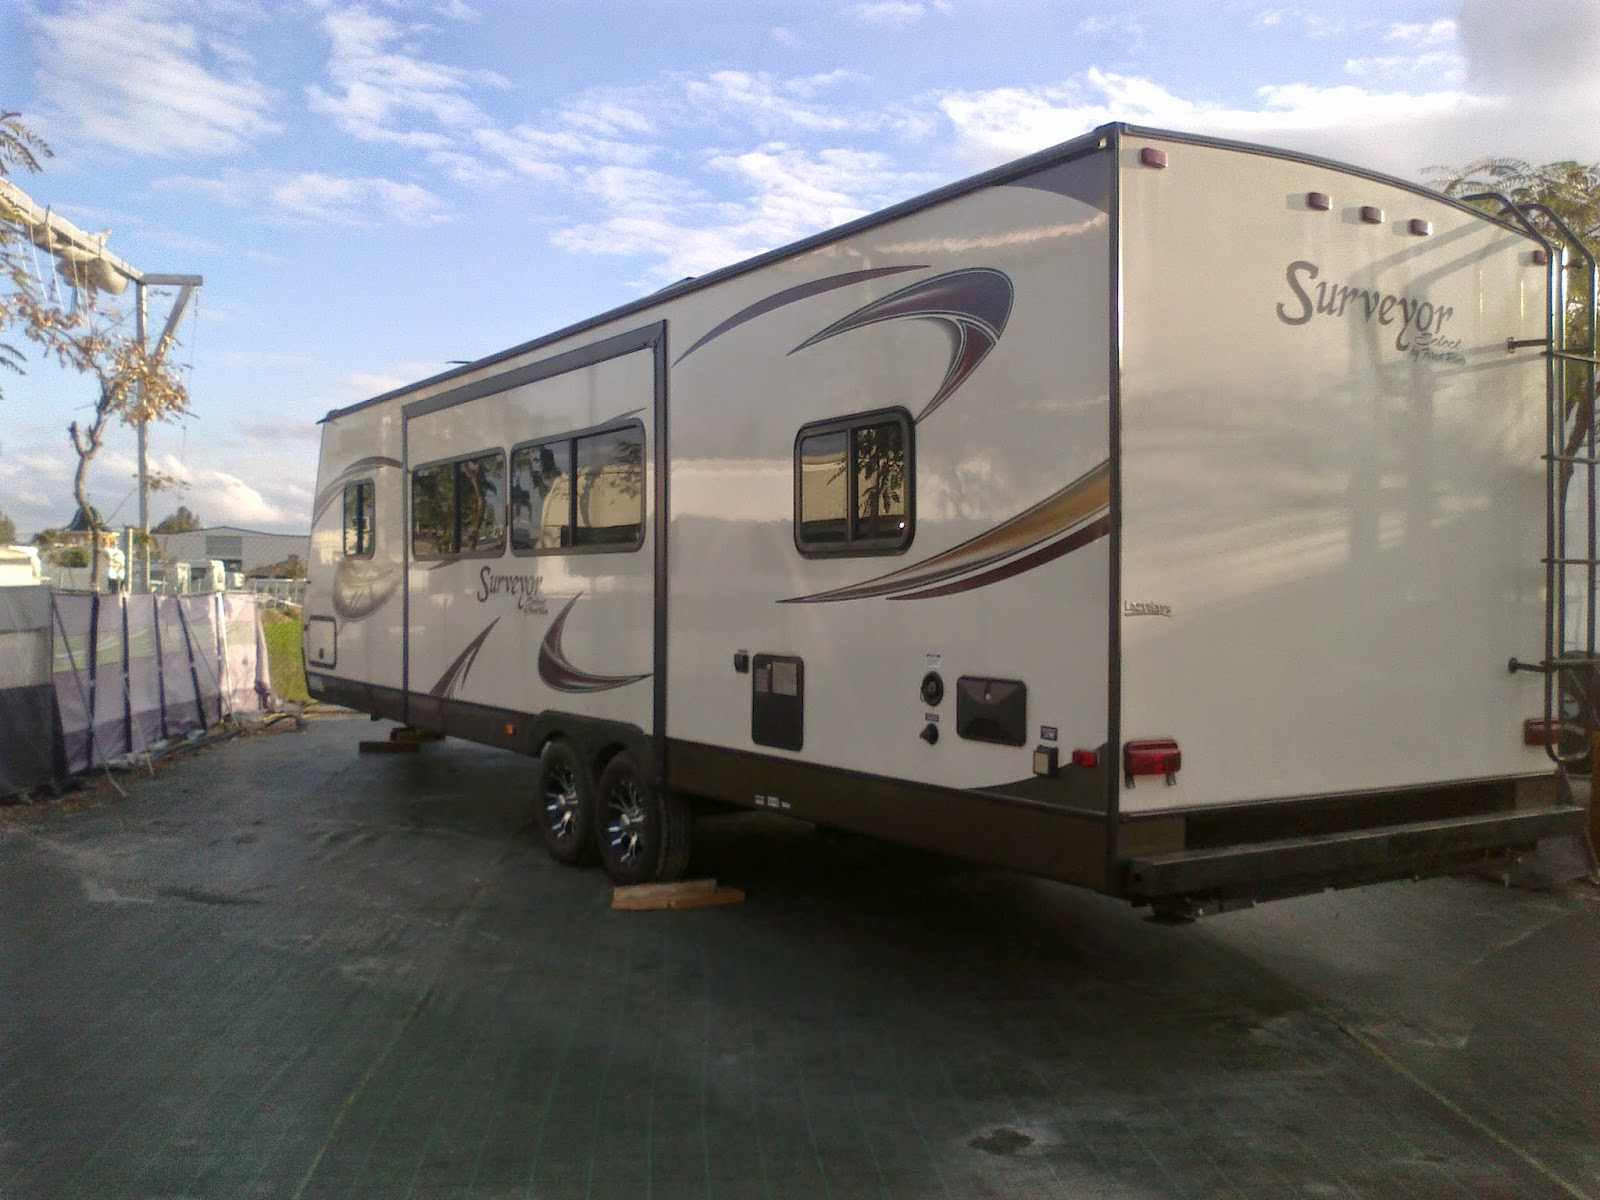 UK Europe caravan towing service